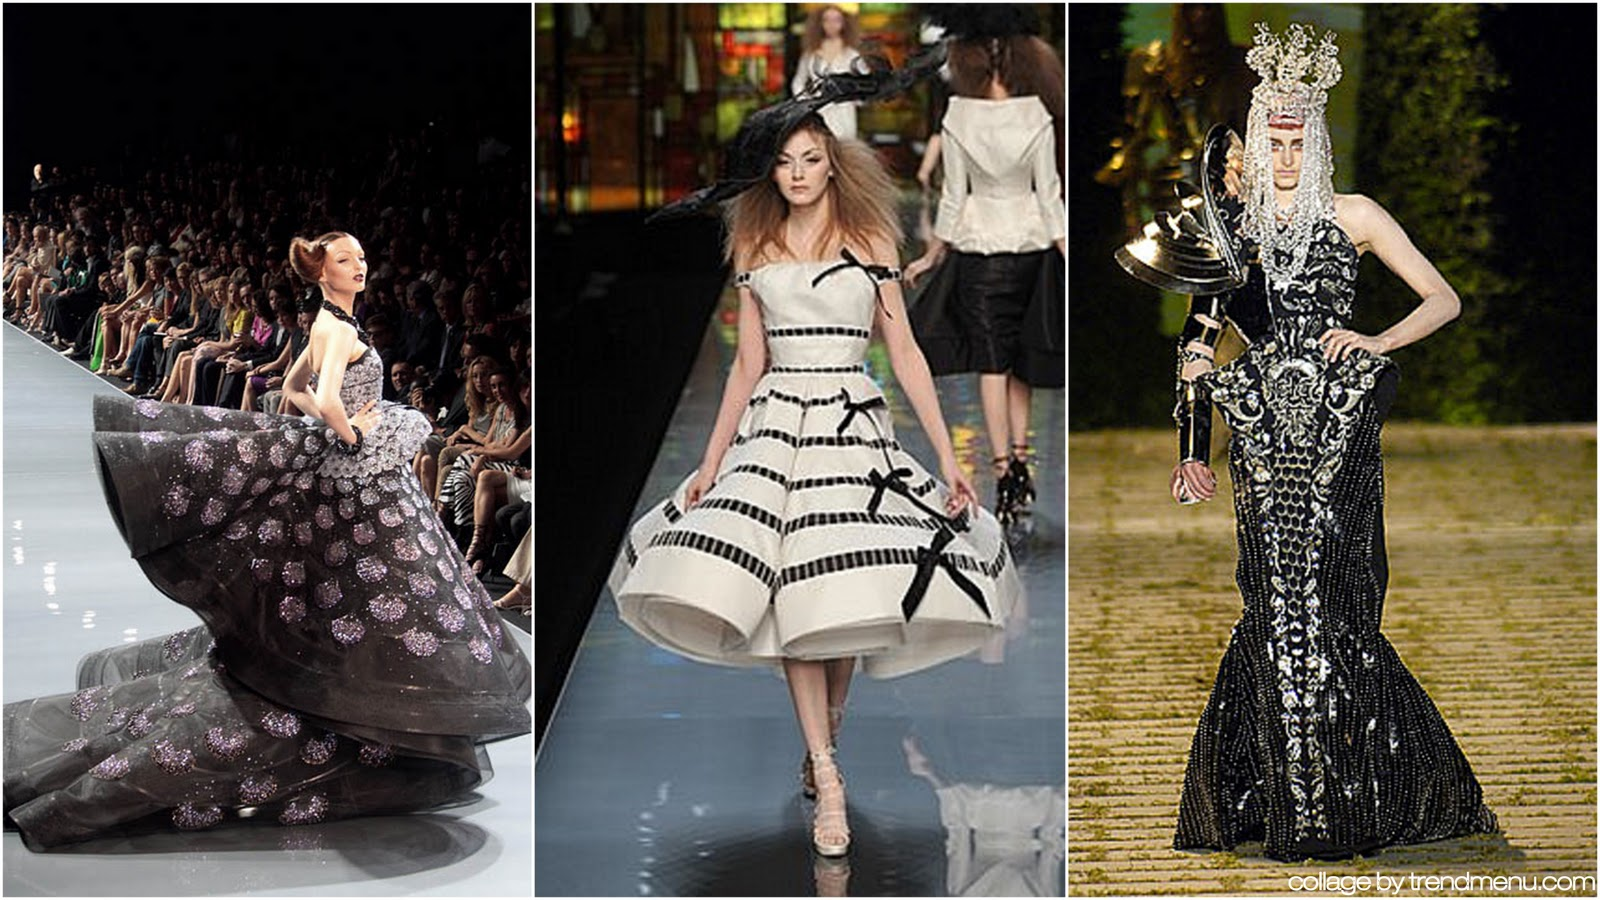 GALLIANO  JOHN GALLIANO THE BRAND galliano dior haute couture 3